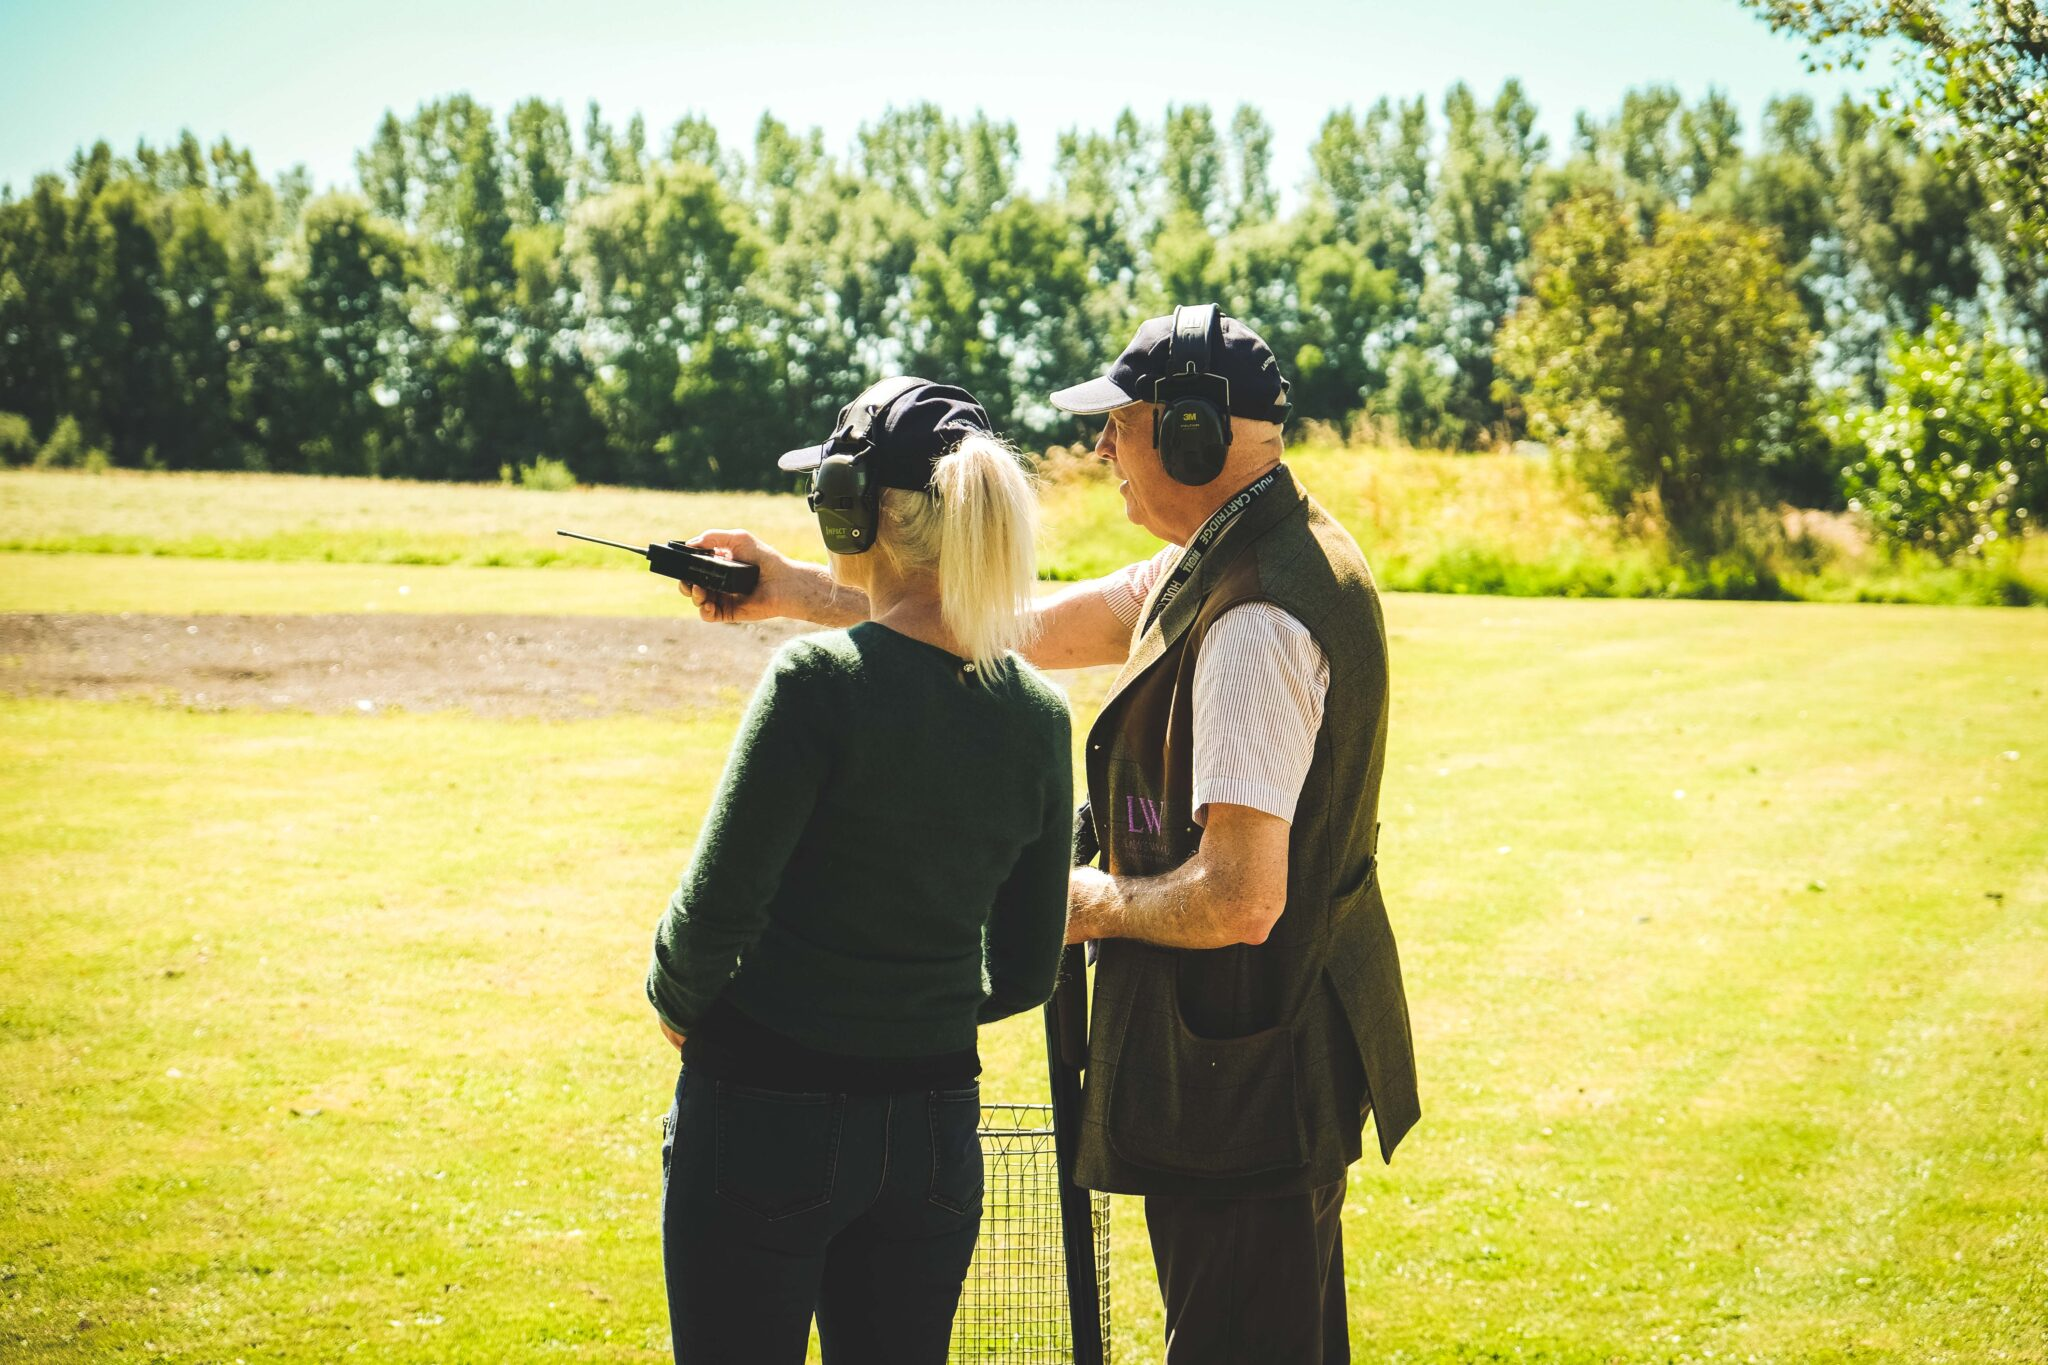 Learning to shoot - clay shooting for beginners